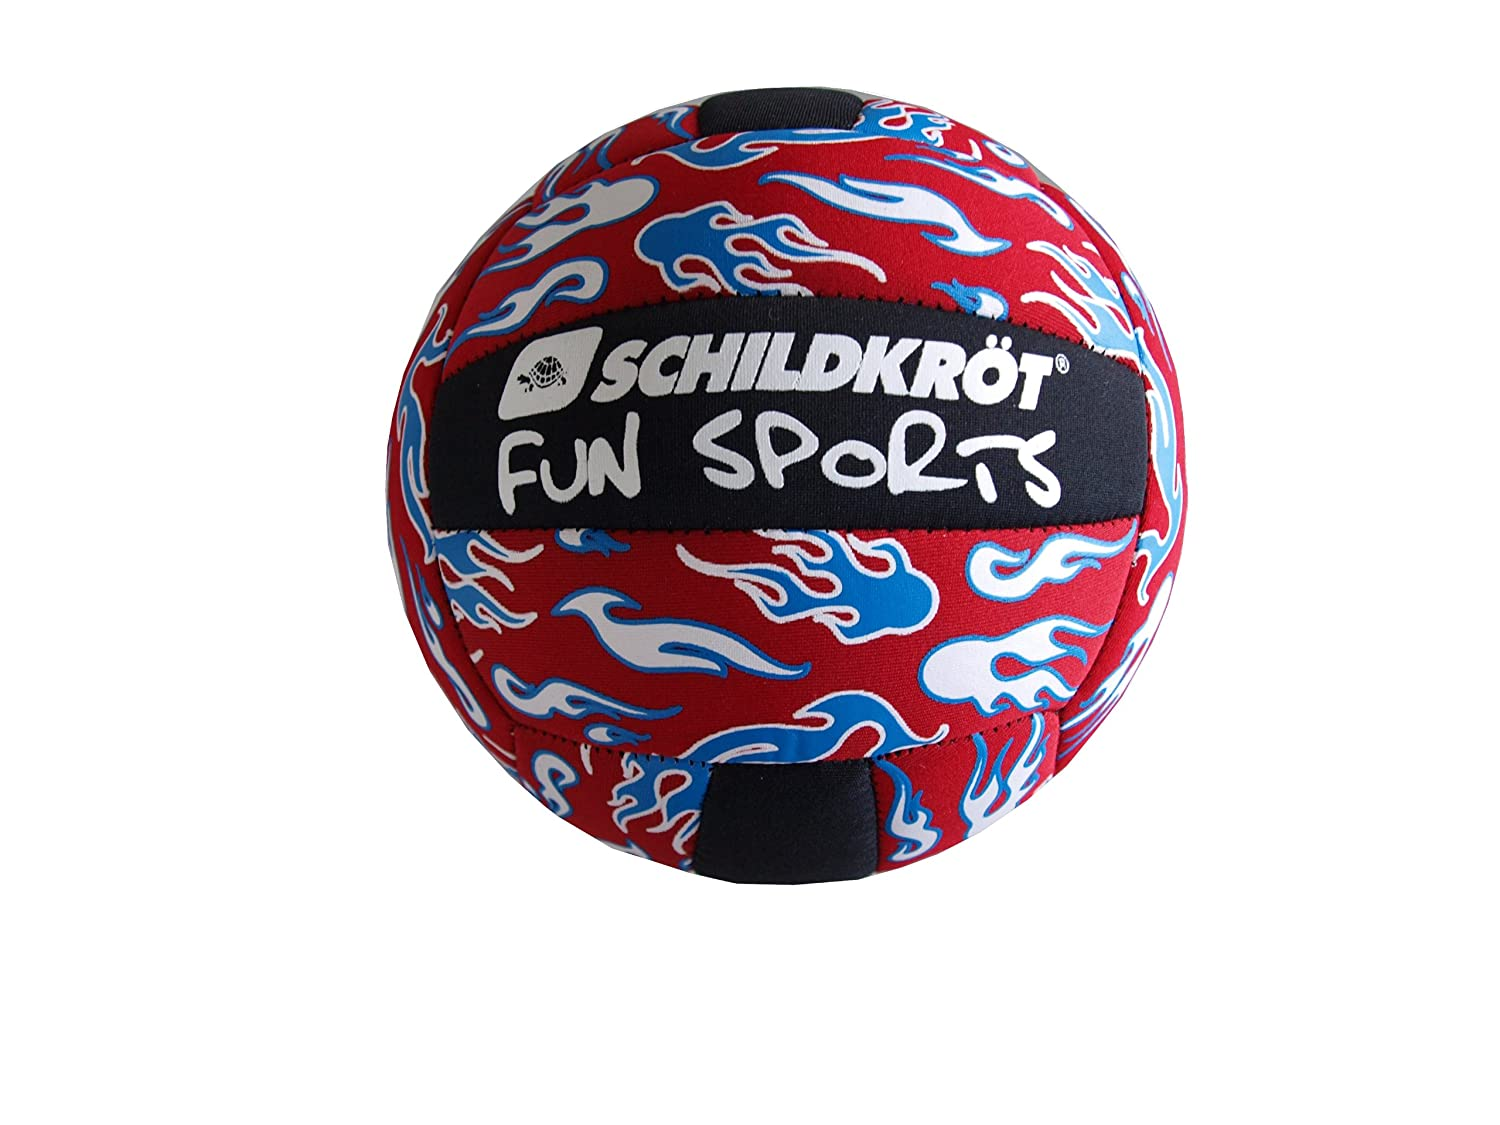 Schildkrö t Fun Sports NEOPREN Mini-Beachvolleyball, Grö ß e 2, rot Schildkröt Funsports 970074